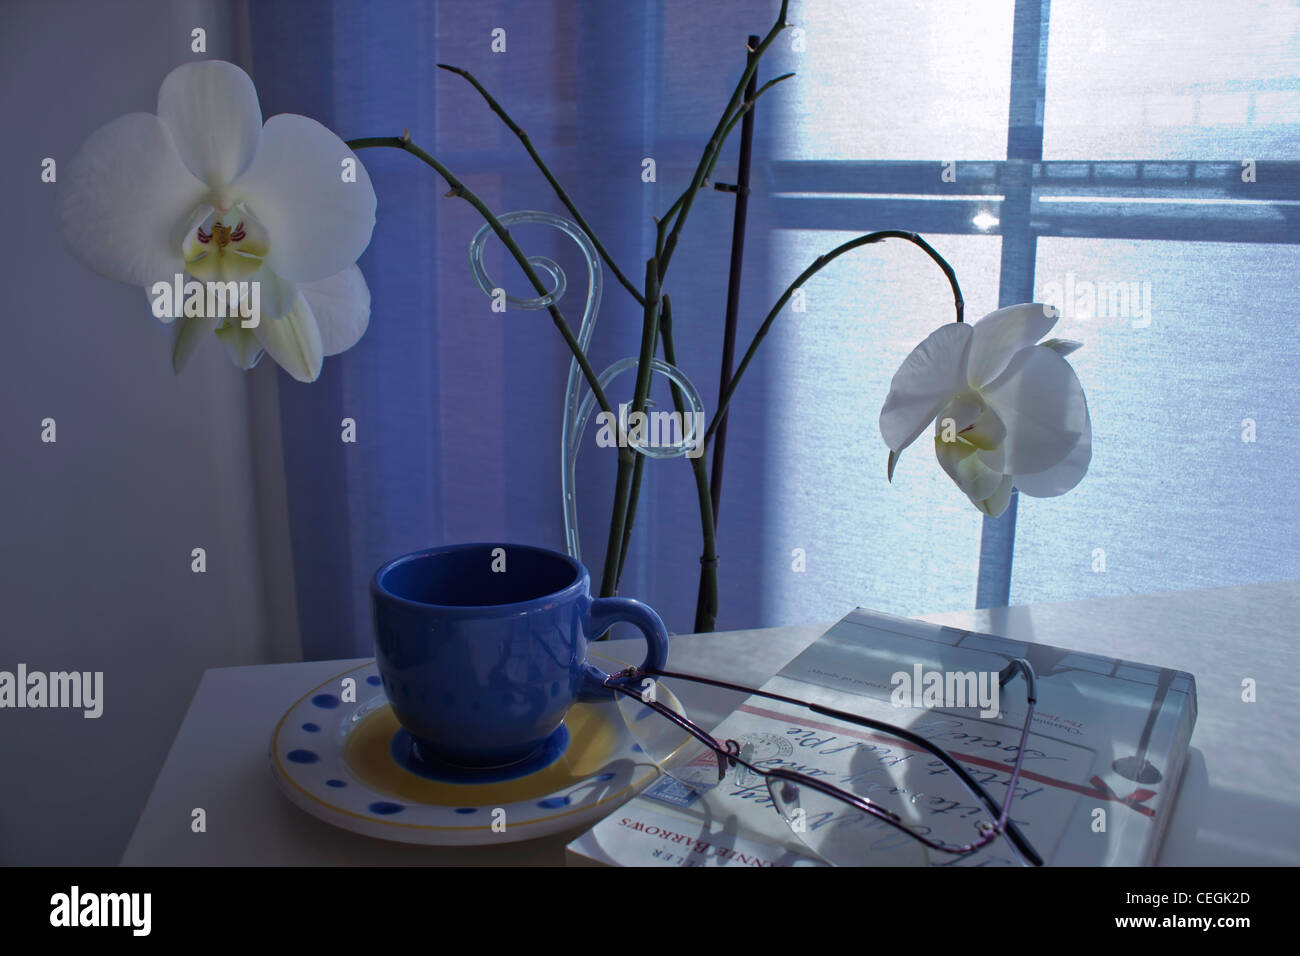 Cup and saucer, book and glasses on table in front of orchid plant. - Stock Image